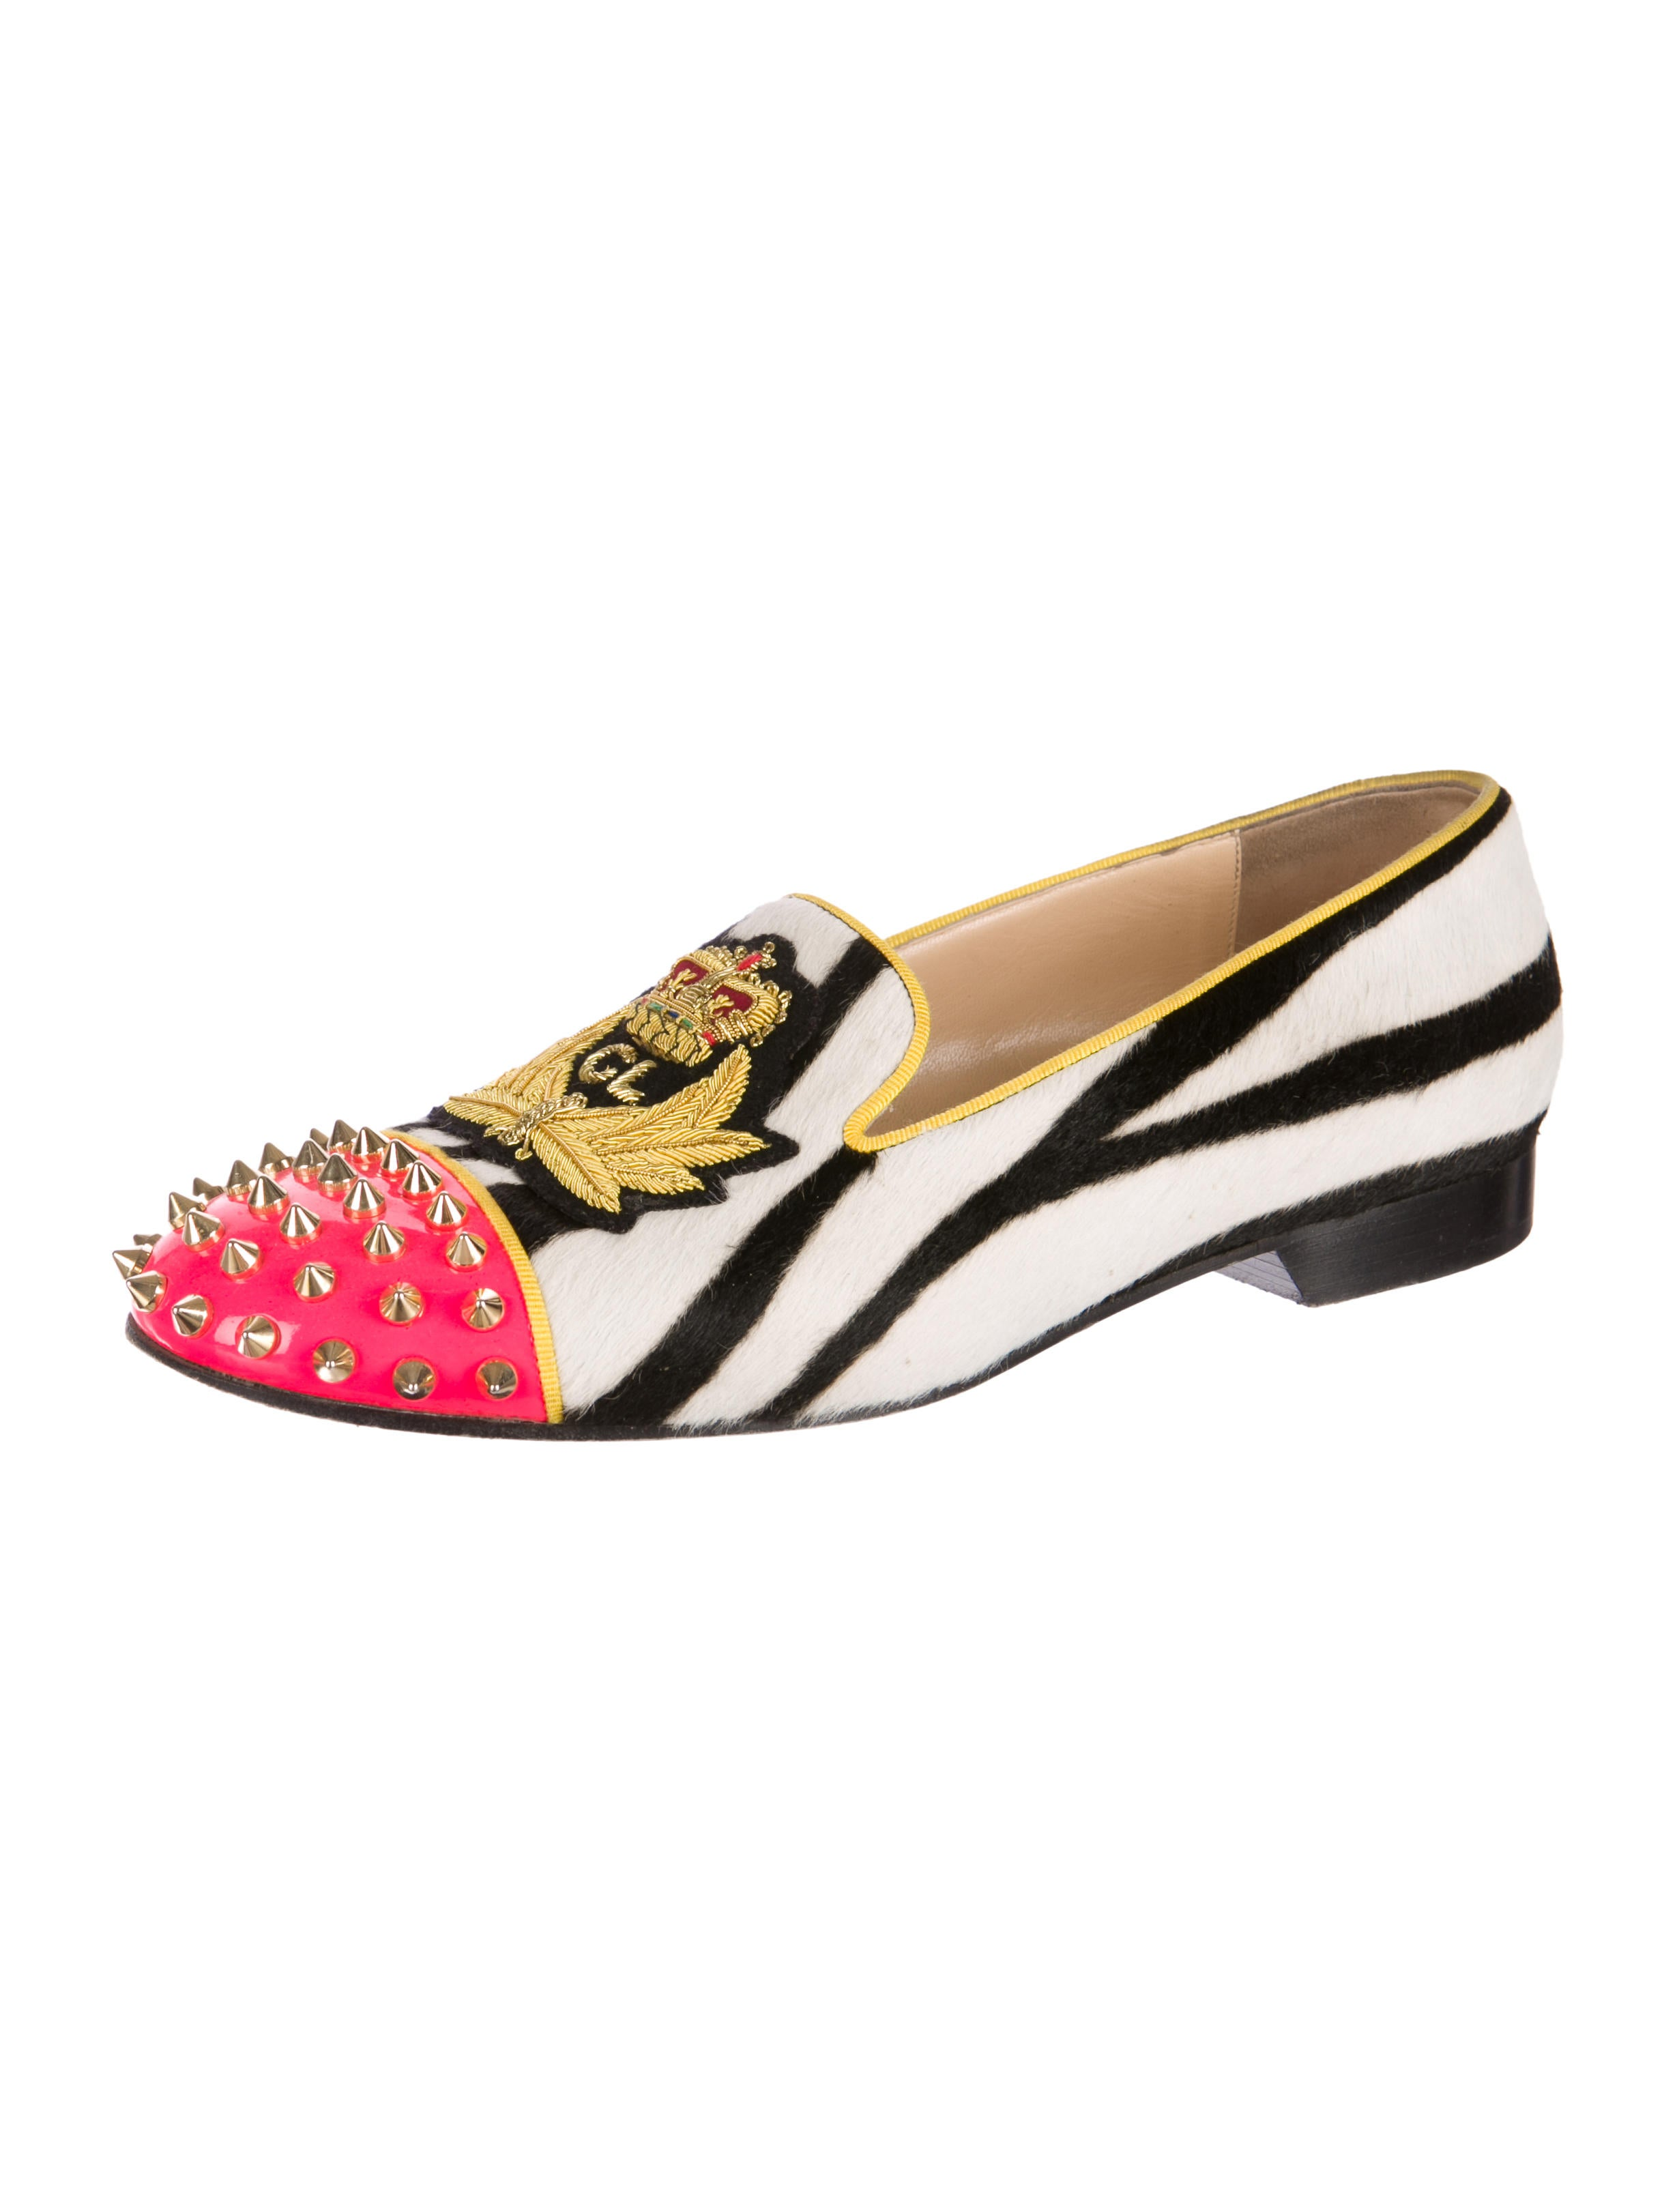 spiked loafers mens christian louboutin - Christian Louboutin Pony Hair Intern Spike-Toe Loafers - Shoes ...